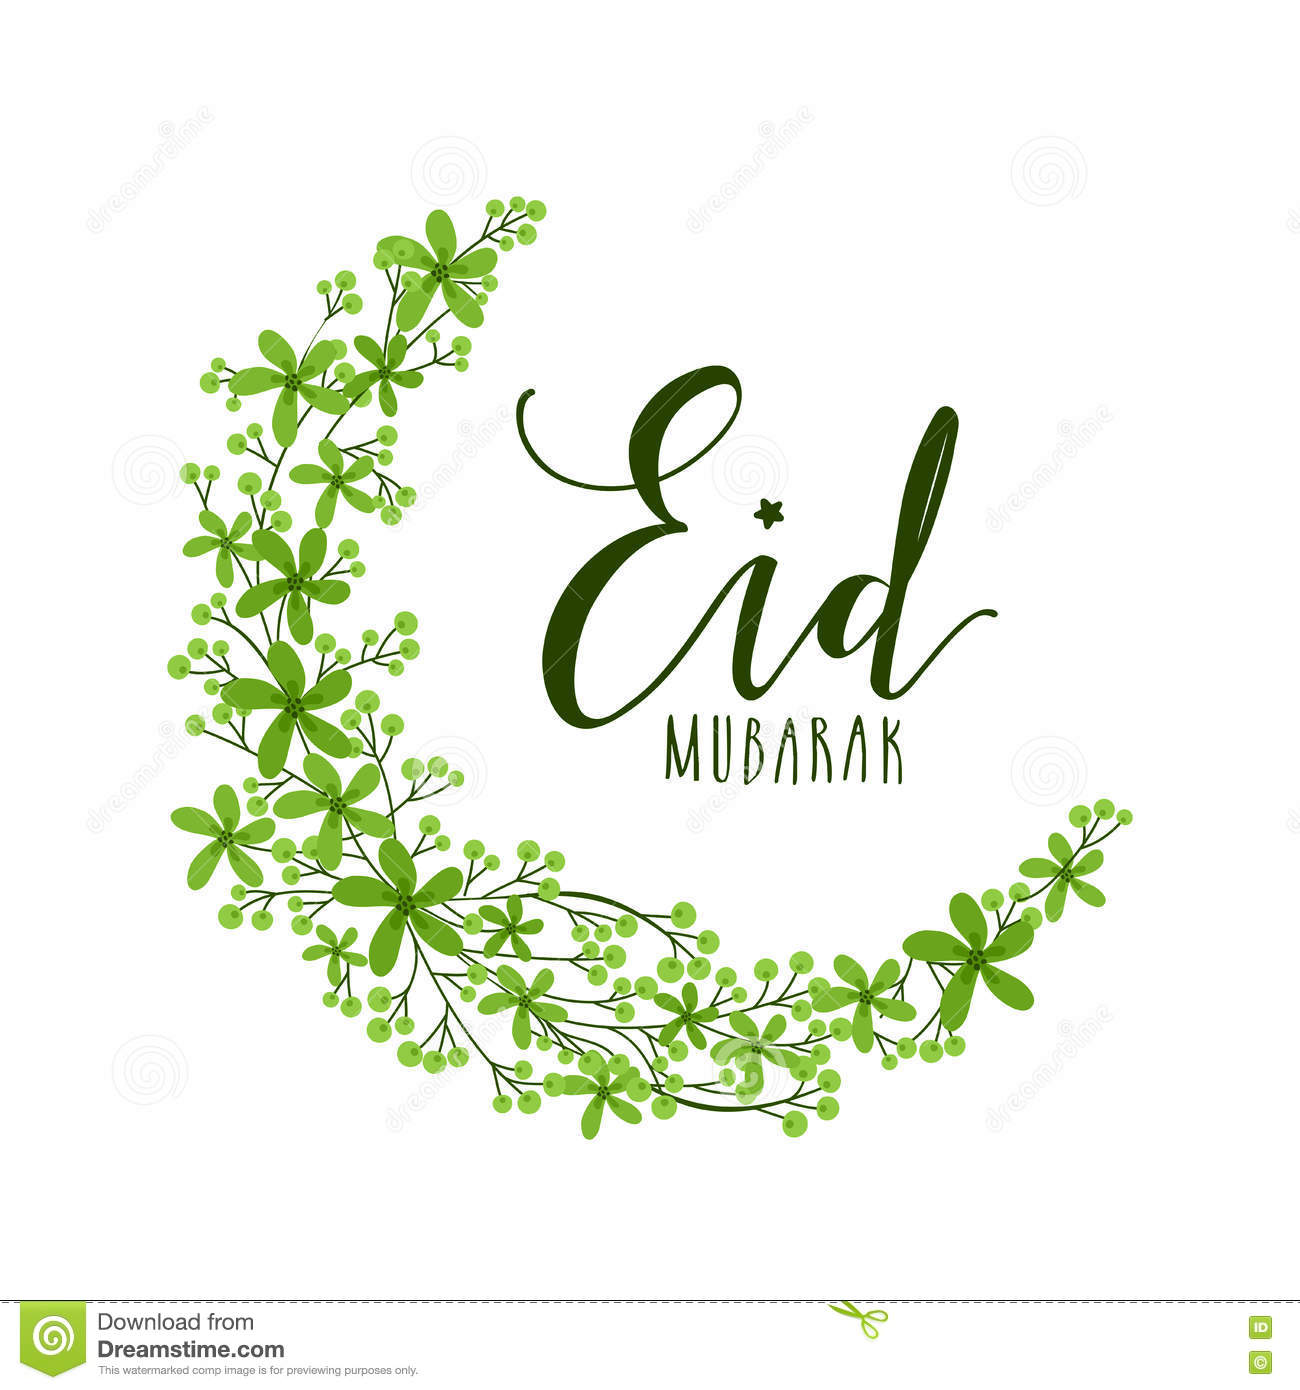 Greeting Card Creative Moon Eid Mubarak Crescent Made Beautiful Green Flowers Elegant Design Islamic Famous Festival With For